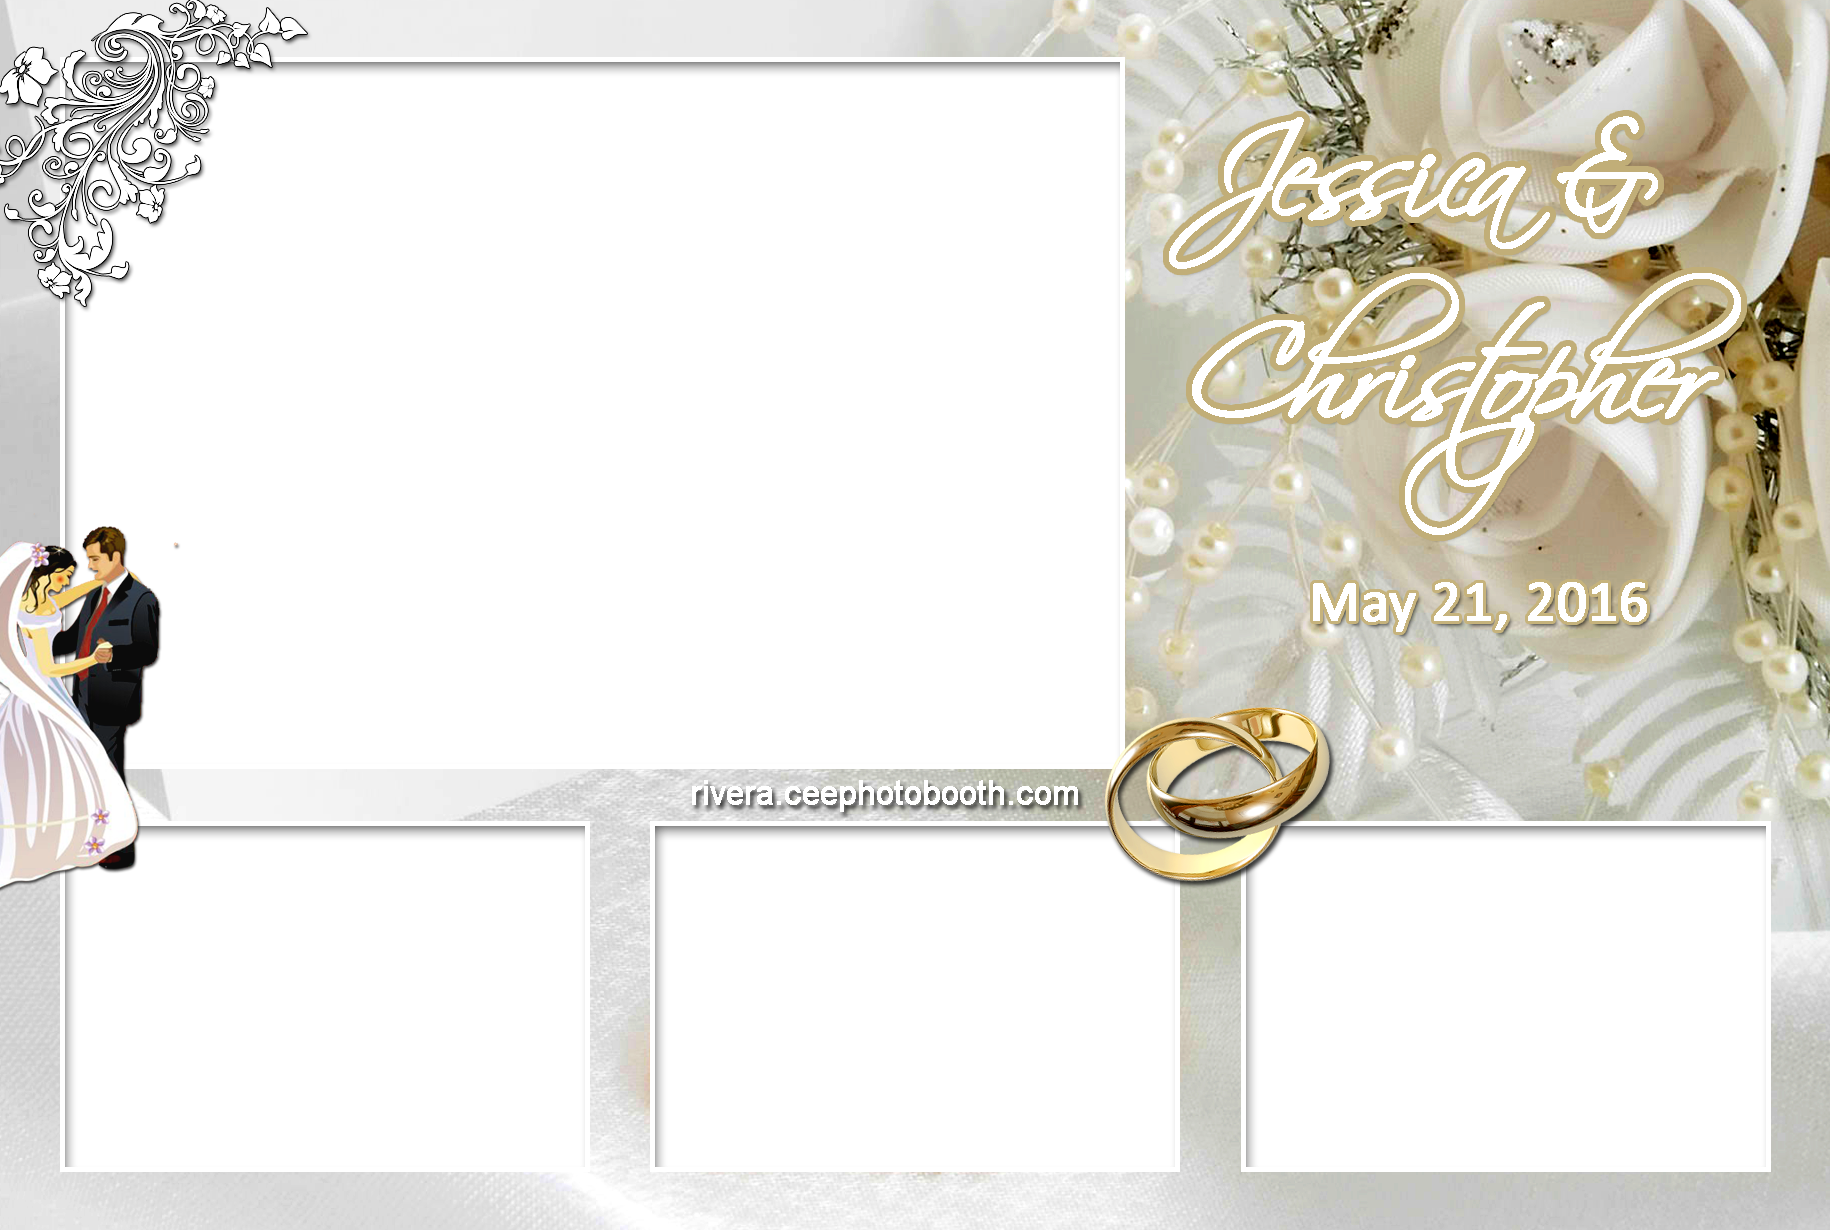 wedding photo booth layout 2